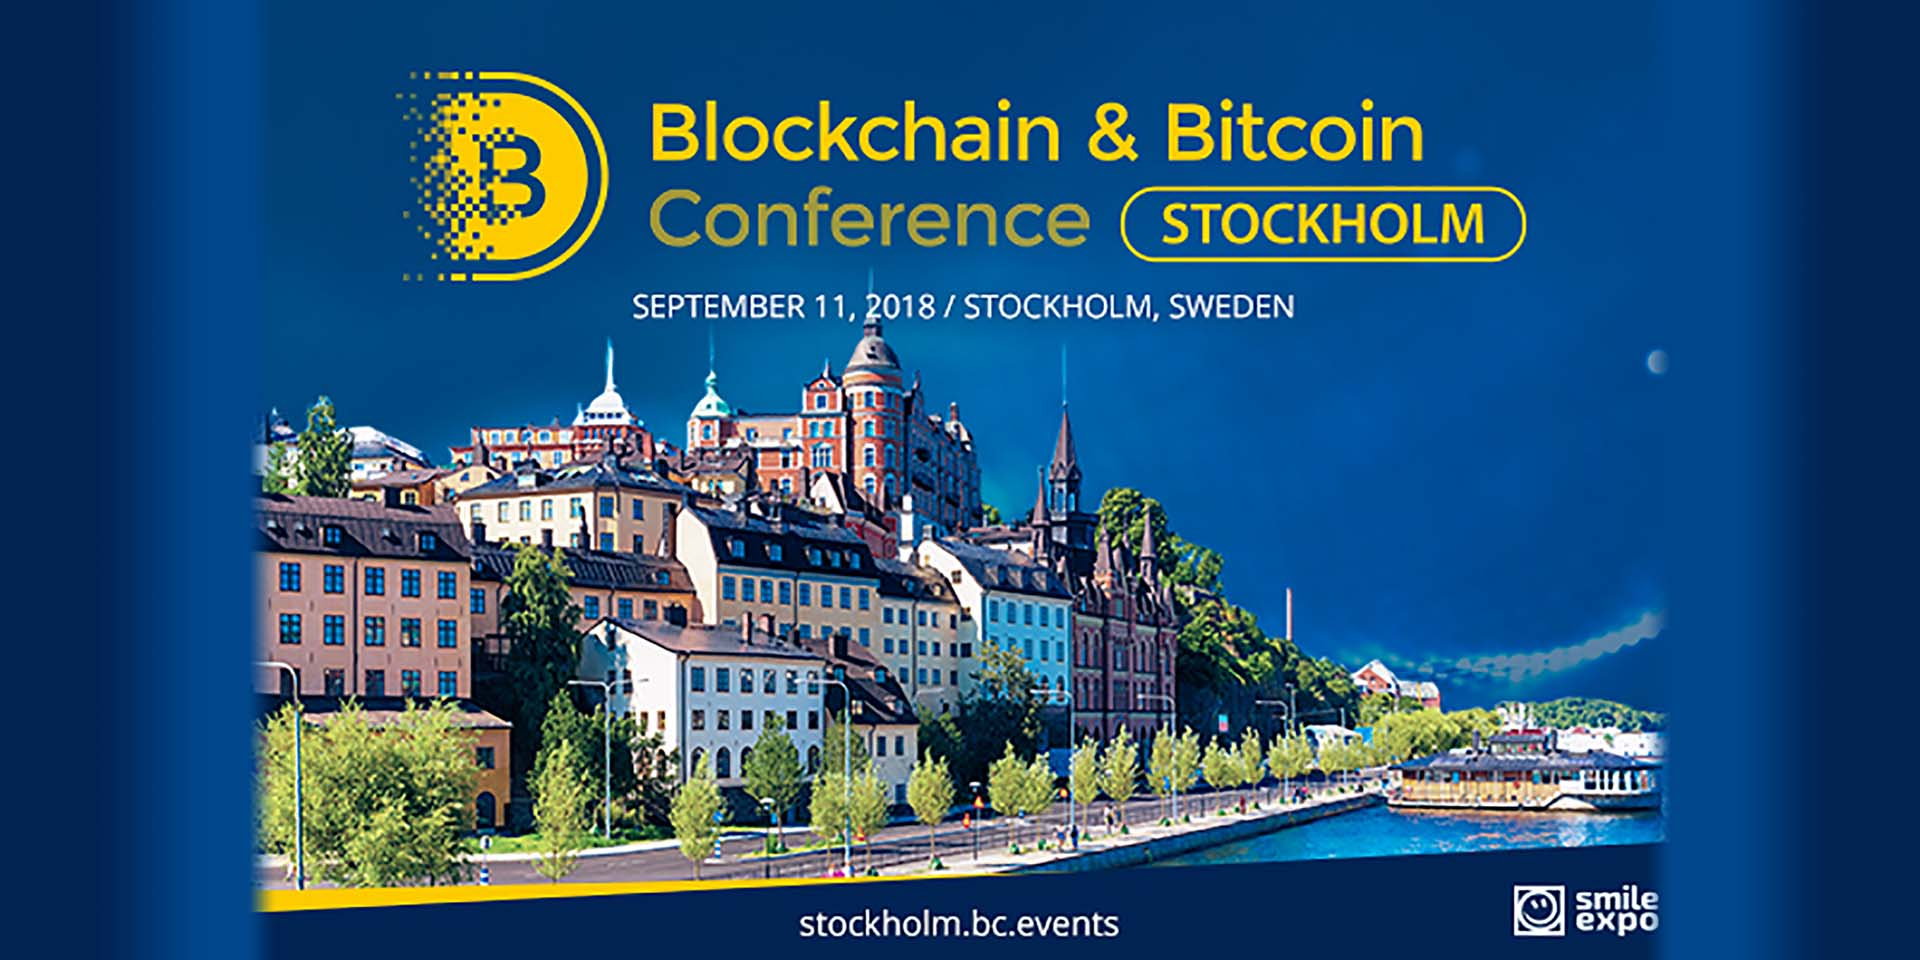 DLT for Different Spheres Will Be Discussed in Stockholm